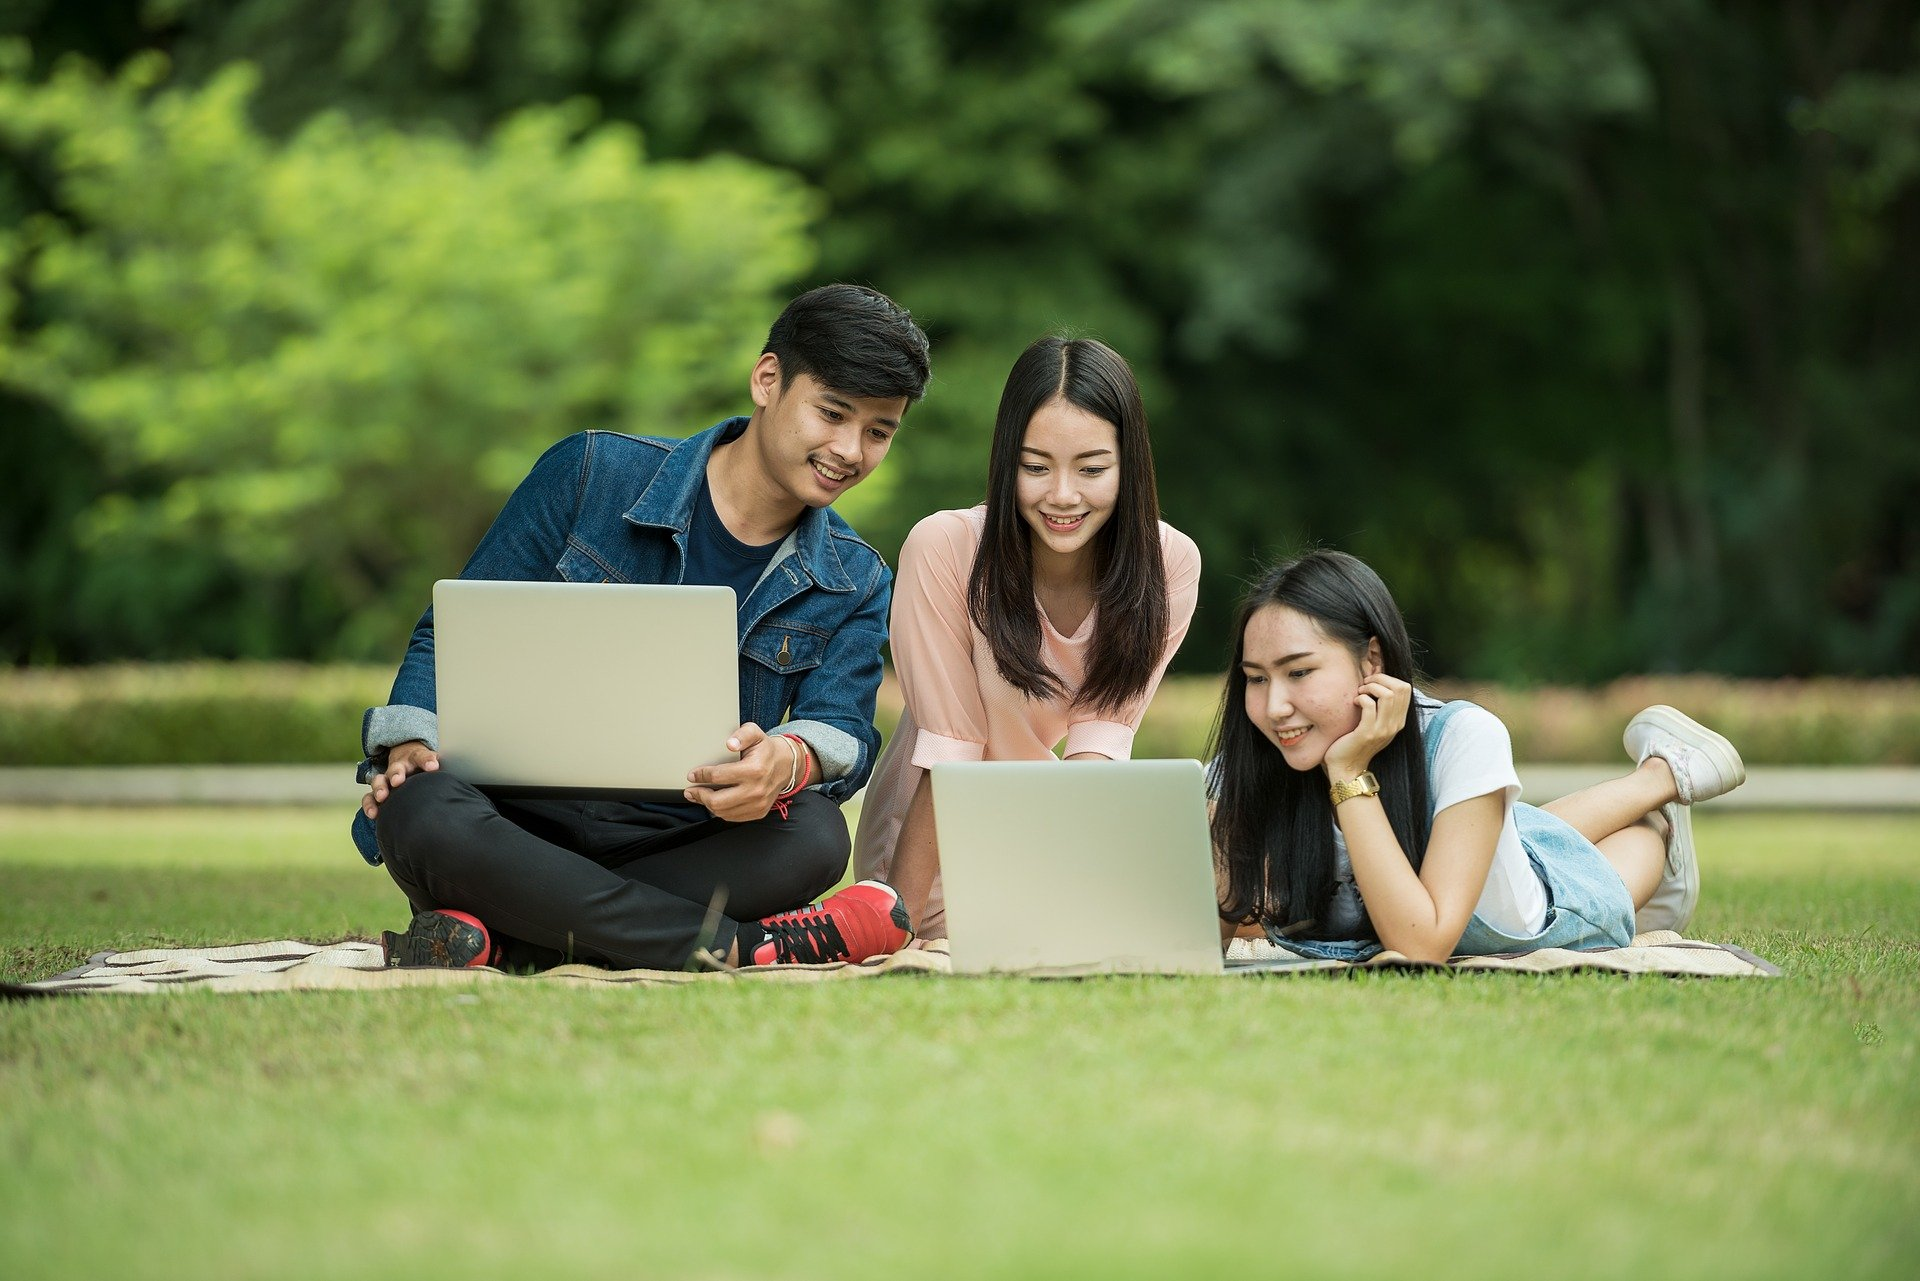 Three students studying together outside on their laptops